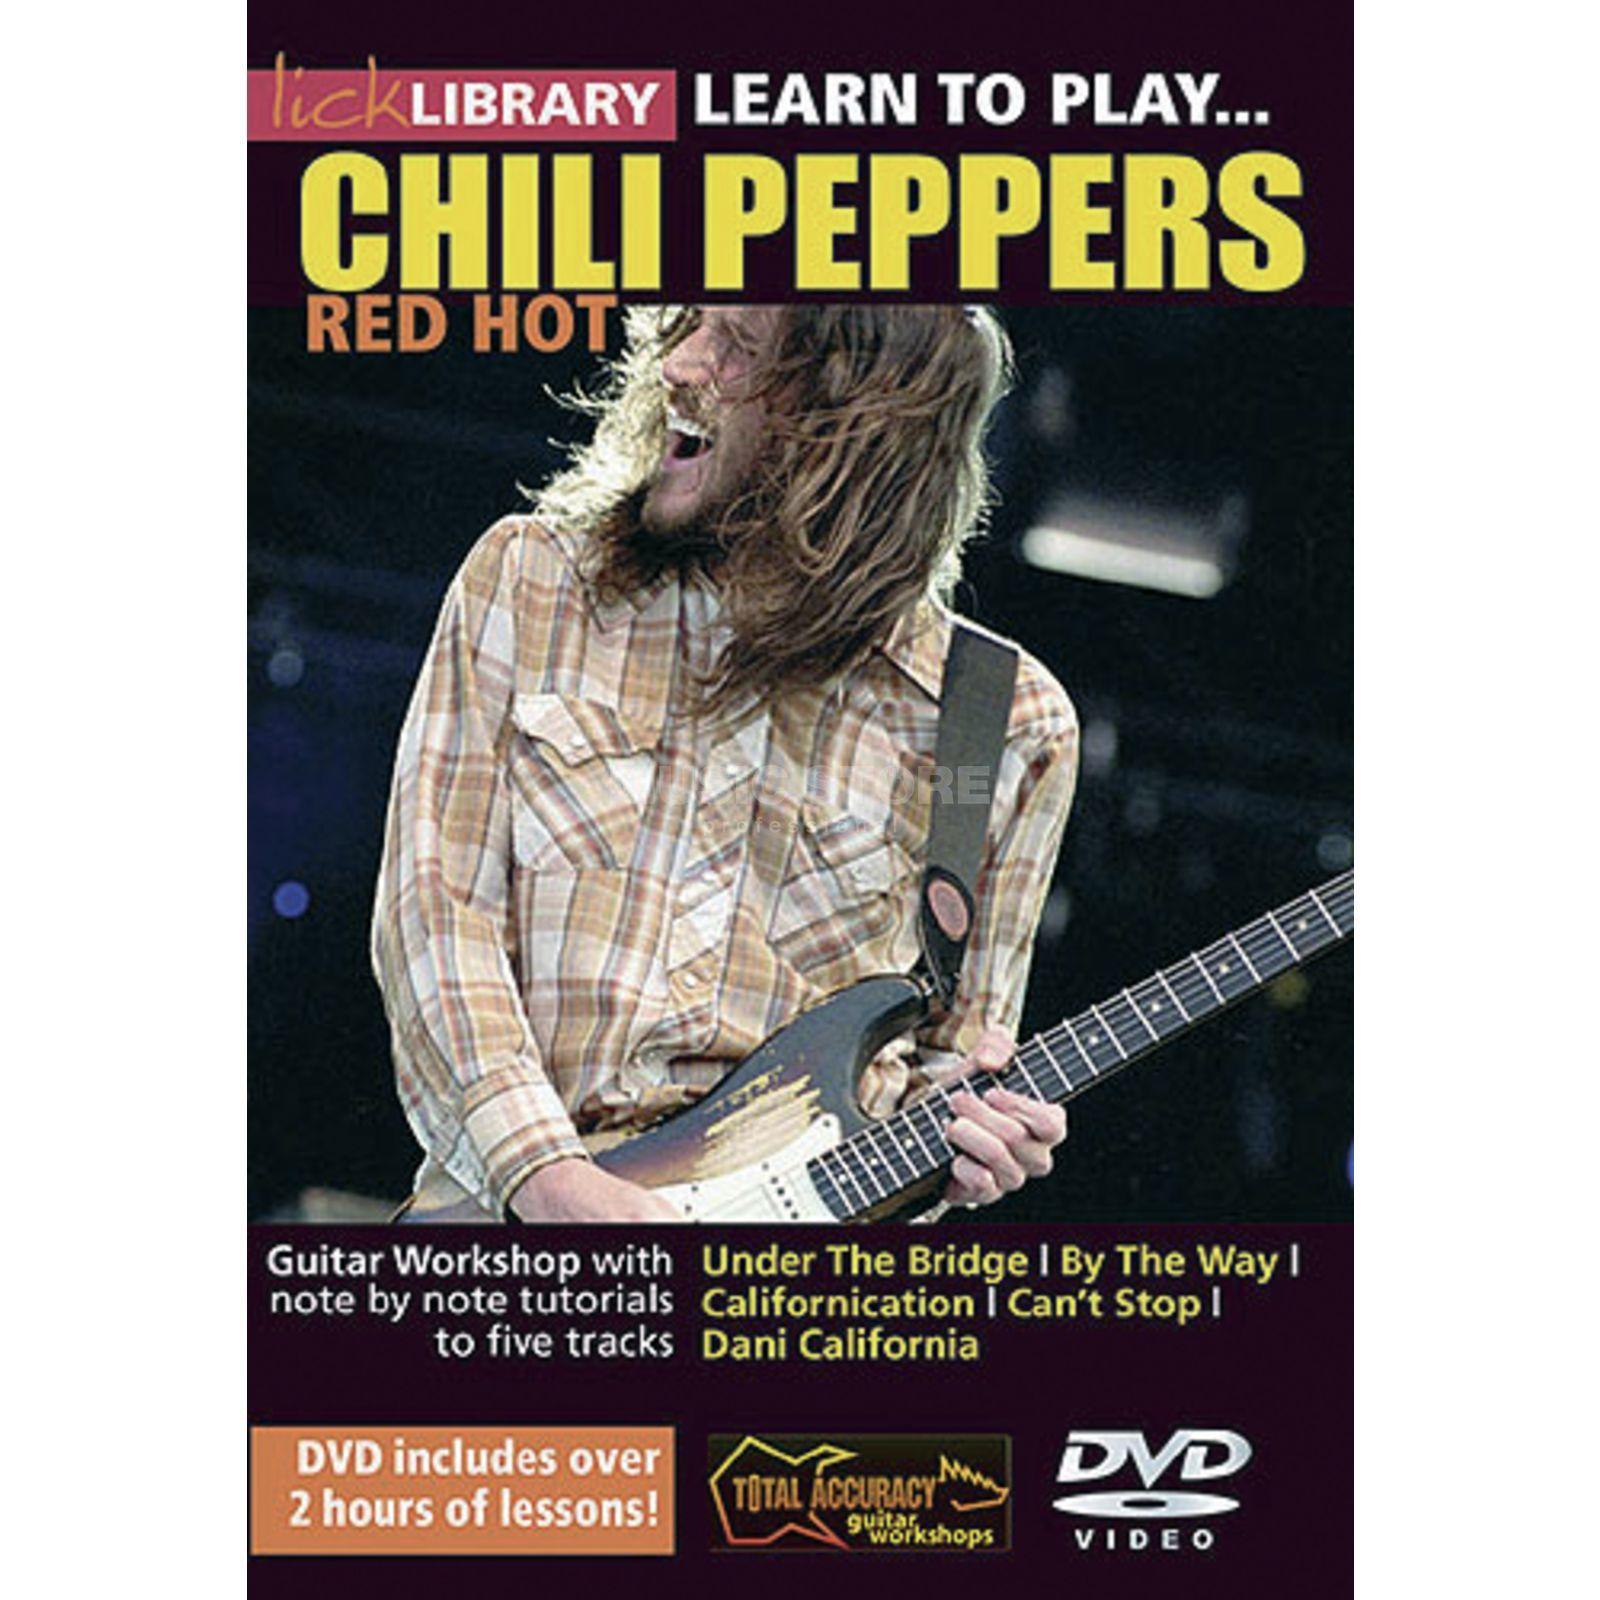 Roadrock International Lick Library: Learn To Play Red Hot Chili Peppers DVD Produktbild